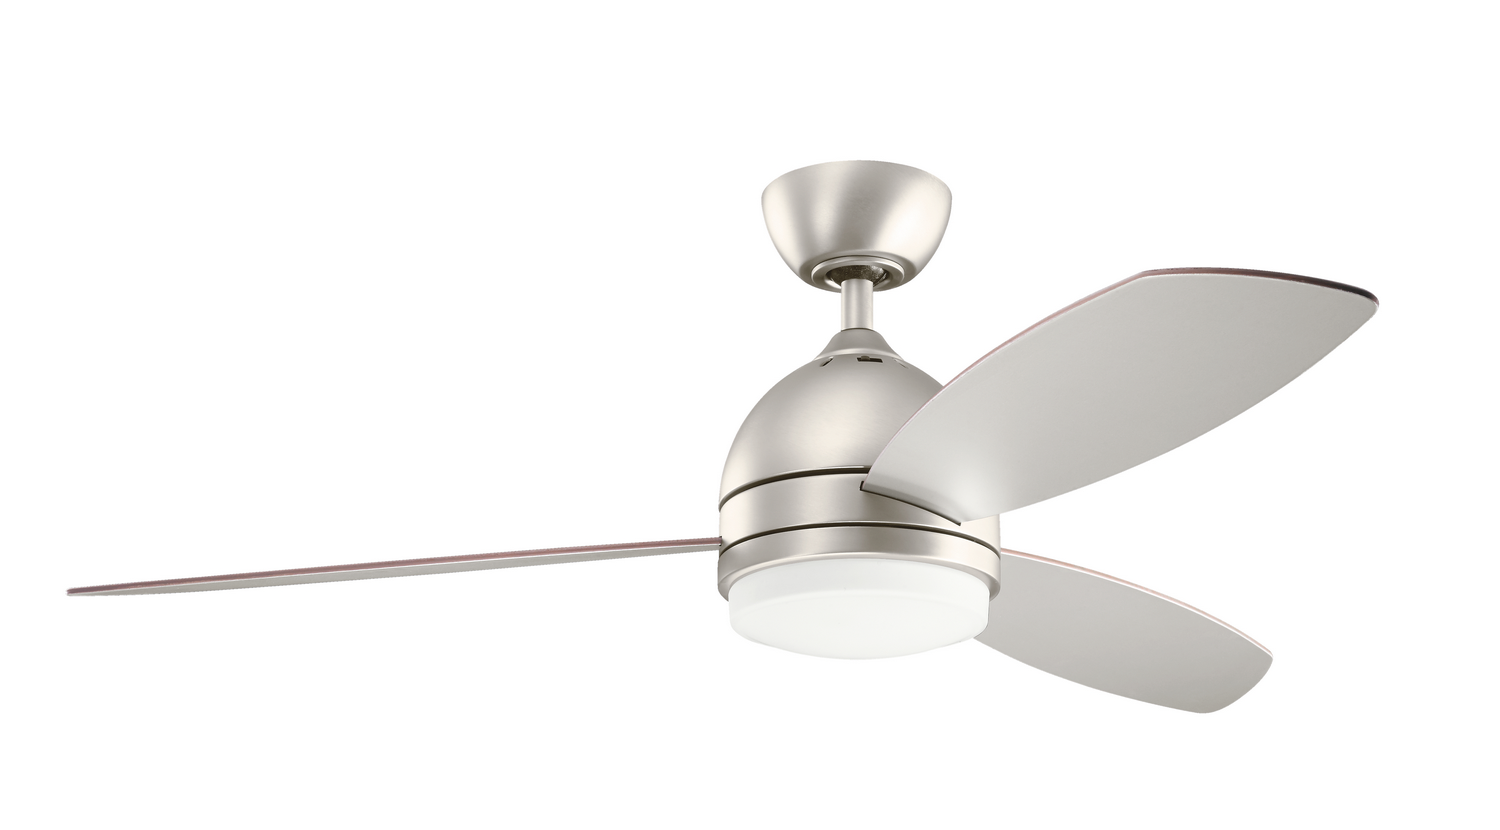 52 inchCeiling Fan from the Vassar collection by Kichler 330002NI